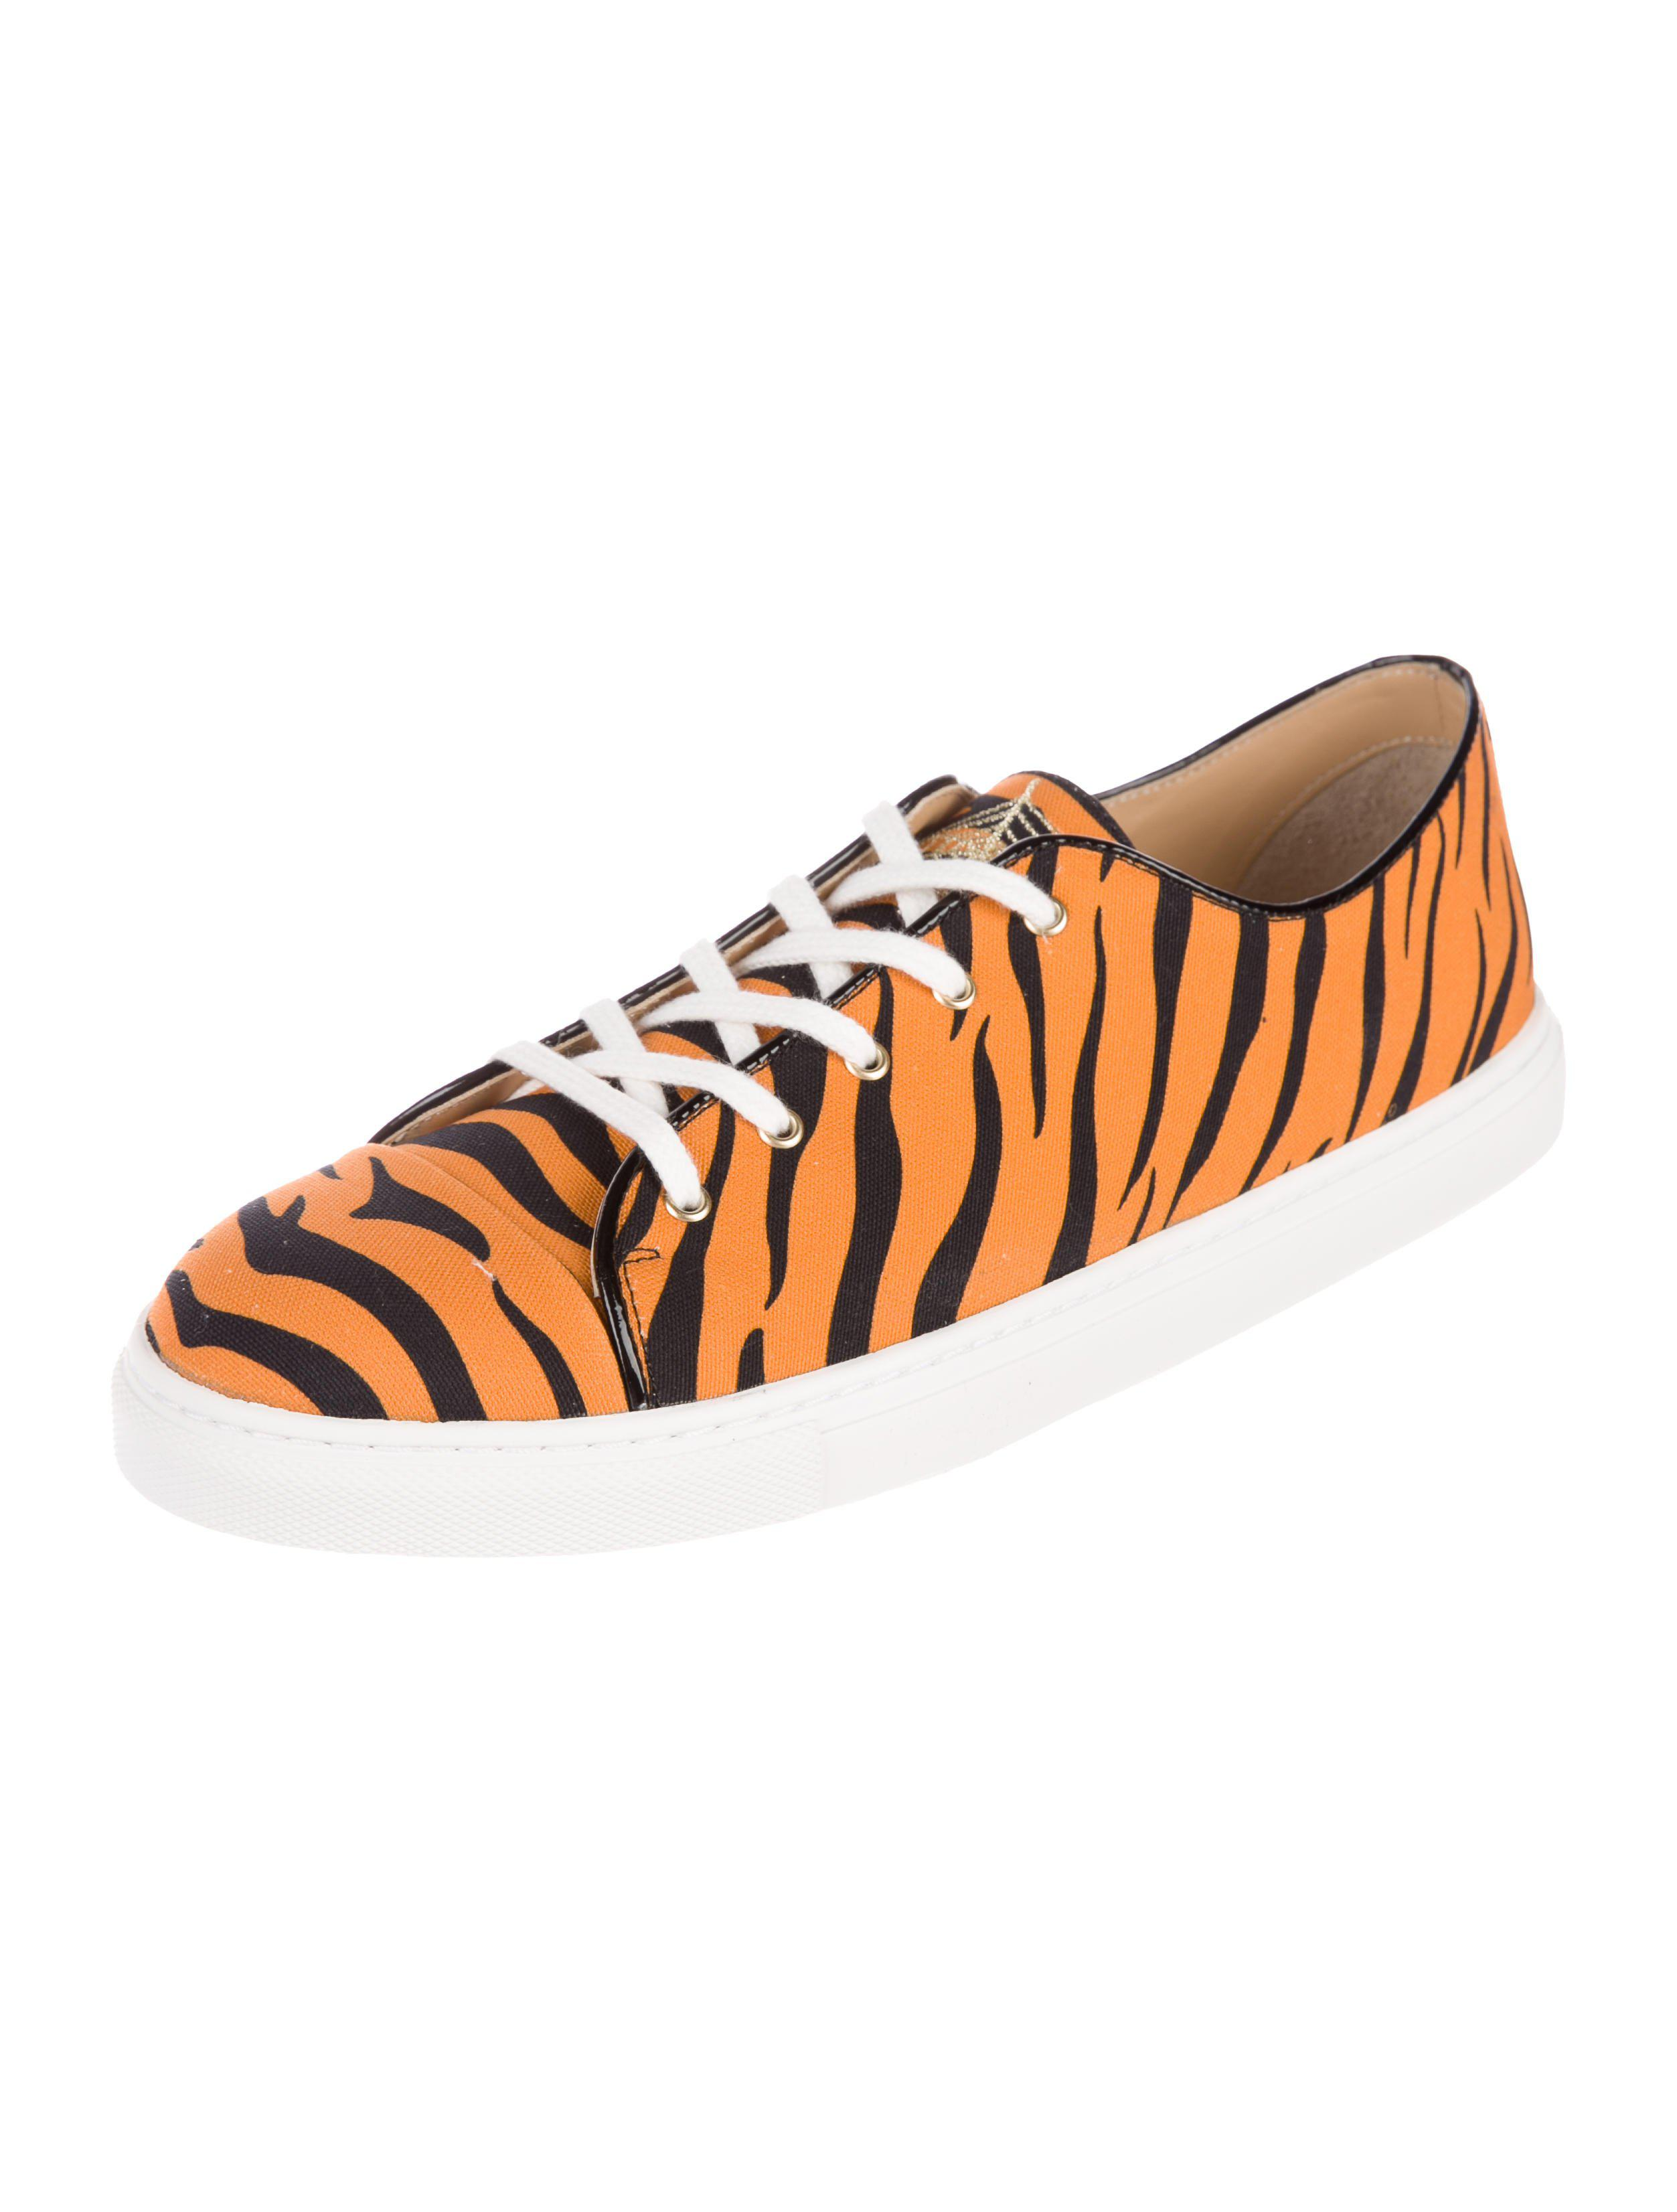 Charlotte Olympia Tiger Printed Sneakers looking for sale free shipping quality from china wholesale cVJEngh